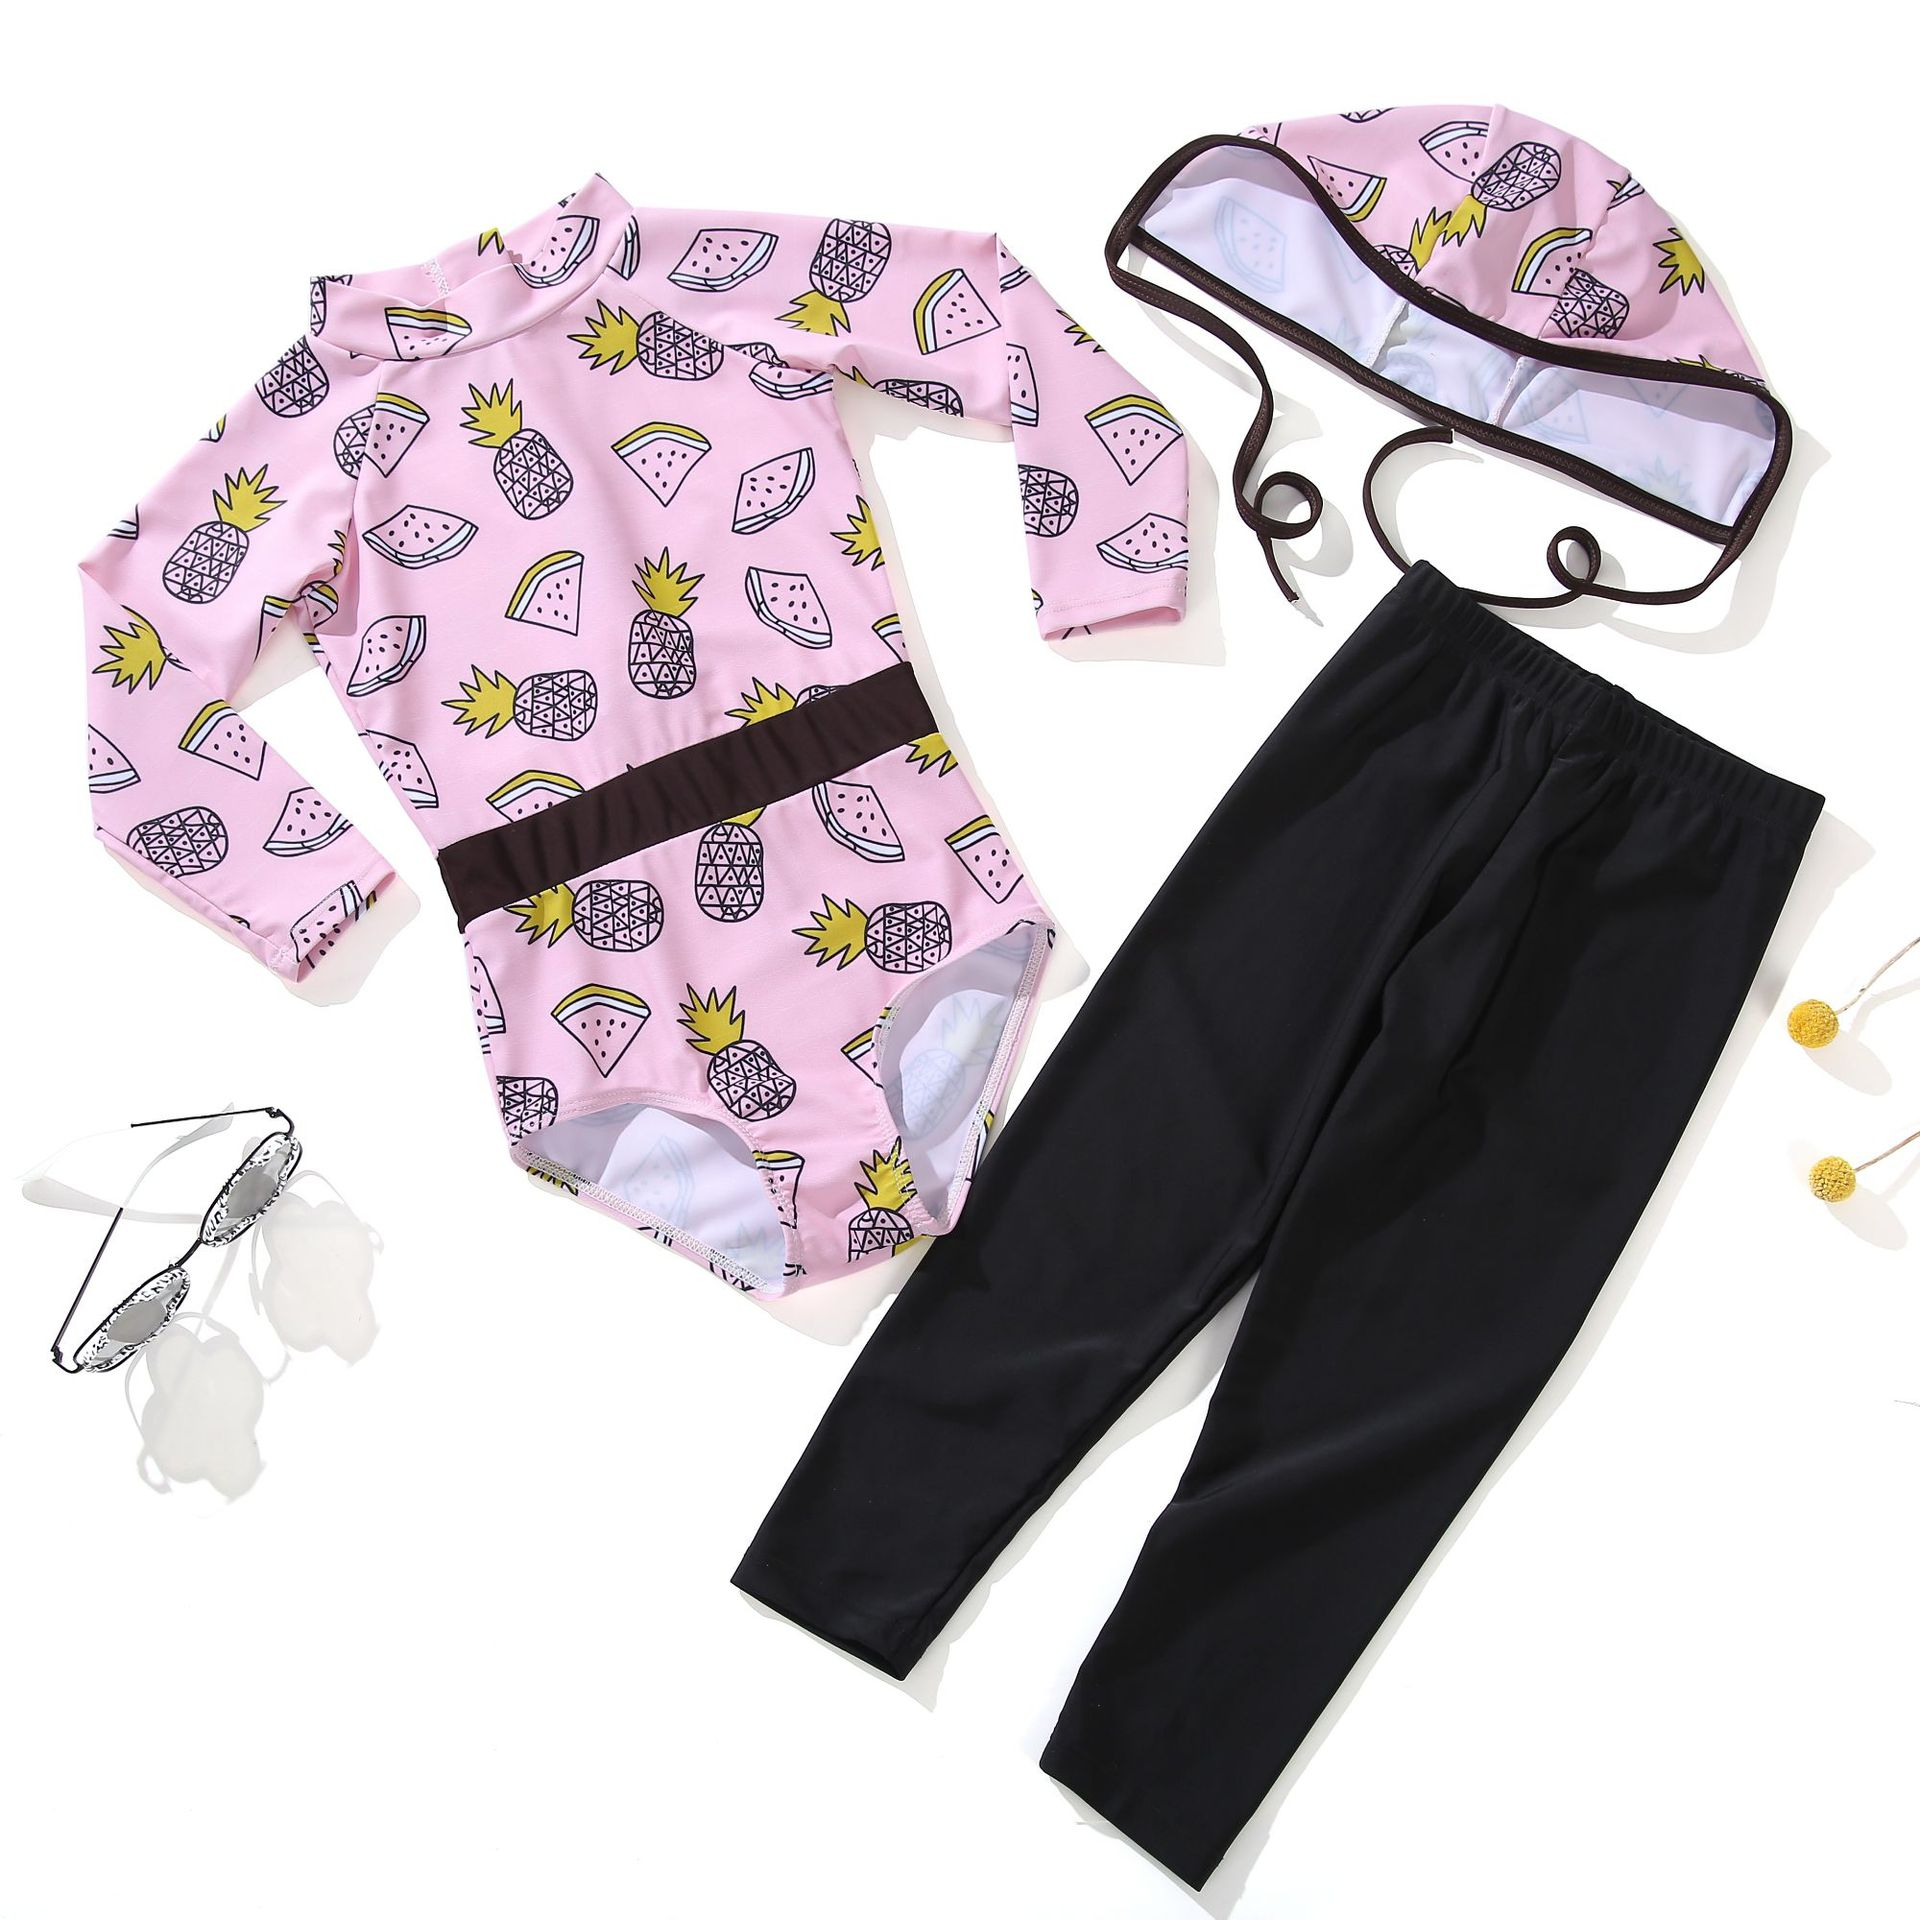 Big Boy Baby Split Type Swimsuit New Style Children Diving Suit Girls Winter Cold Snorkeling Clothing One-piece Coat